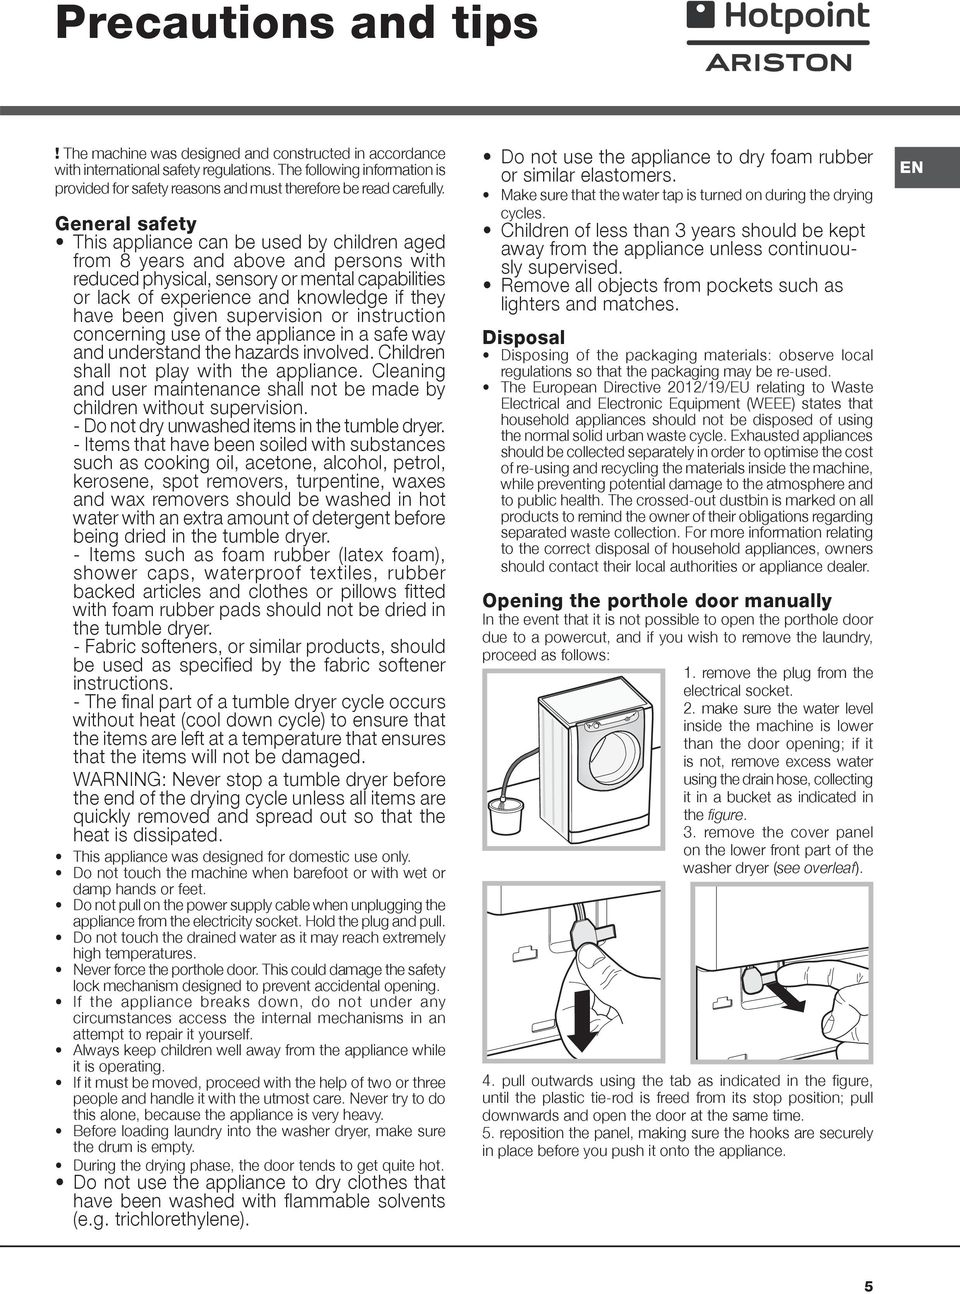 General safety This appliance can be used by children aged from 8 years and above and persons with reduced physical, sensory or mental capabilities or lack of experience and knowledge if they have